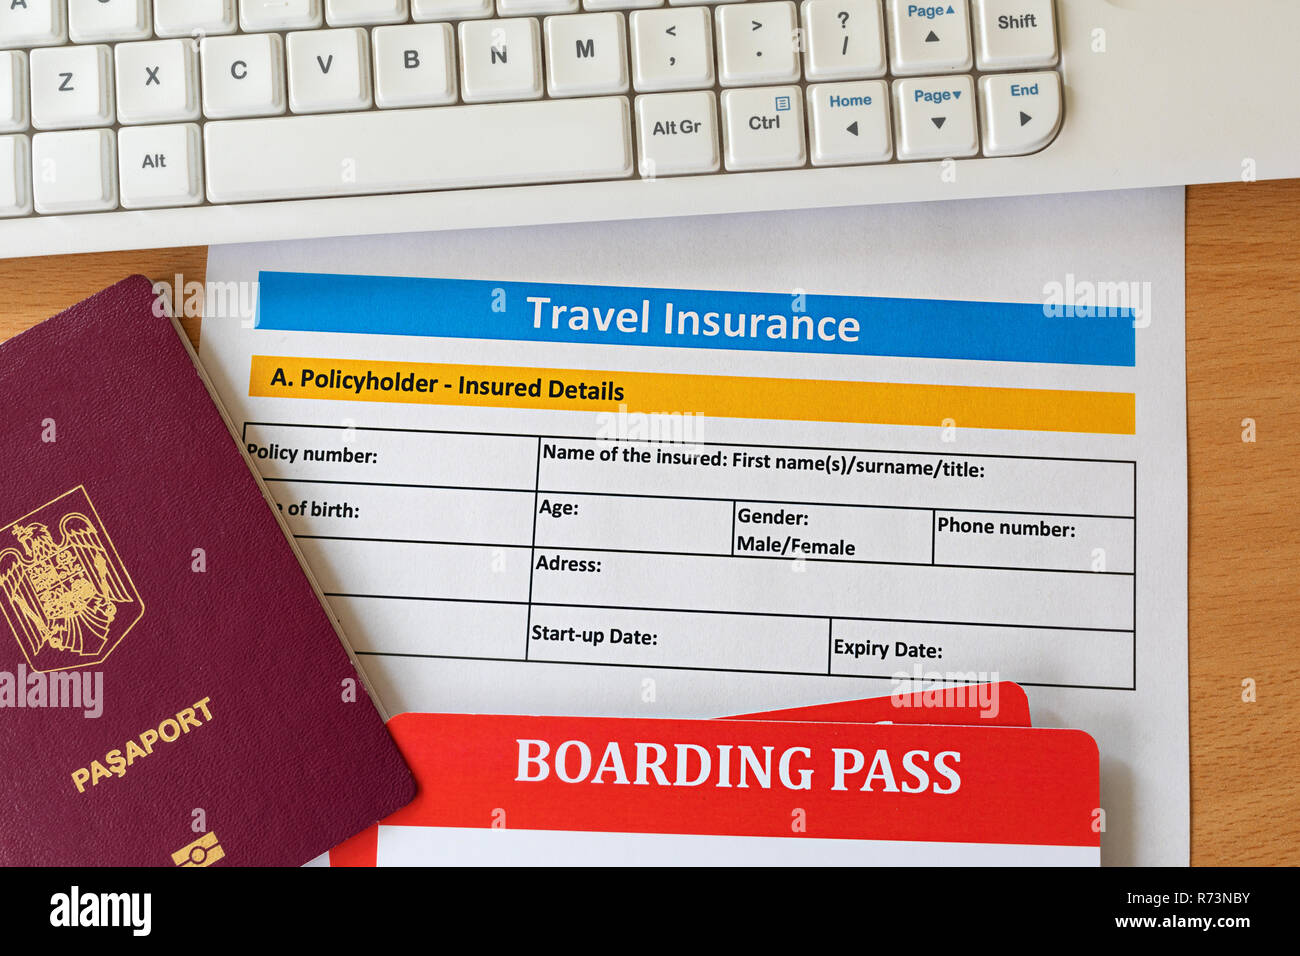 Travel insurance form with boarding pass tickets, passport keyboard on wooden table. Agencies sell airplane tickets or travel packages and allow consu - Stock Image